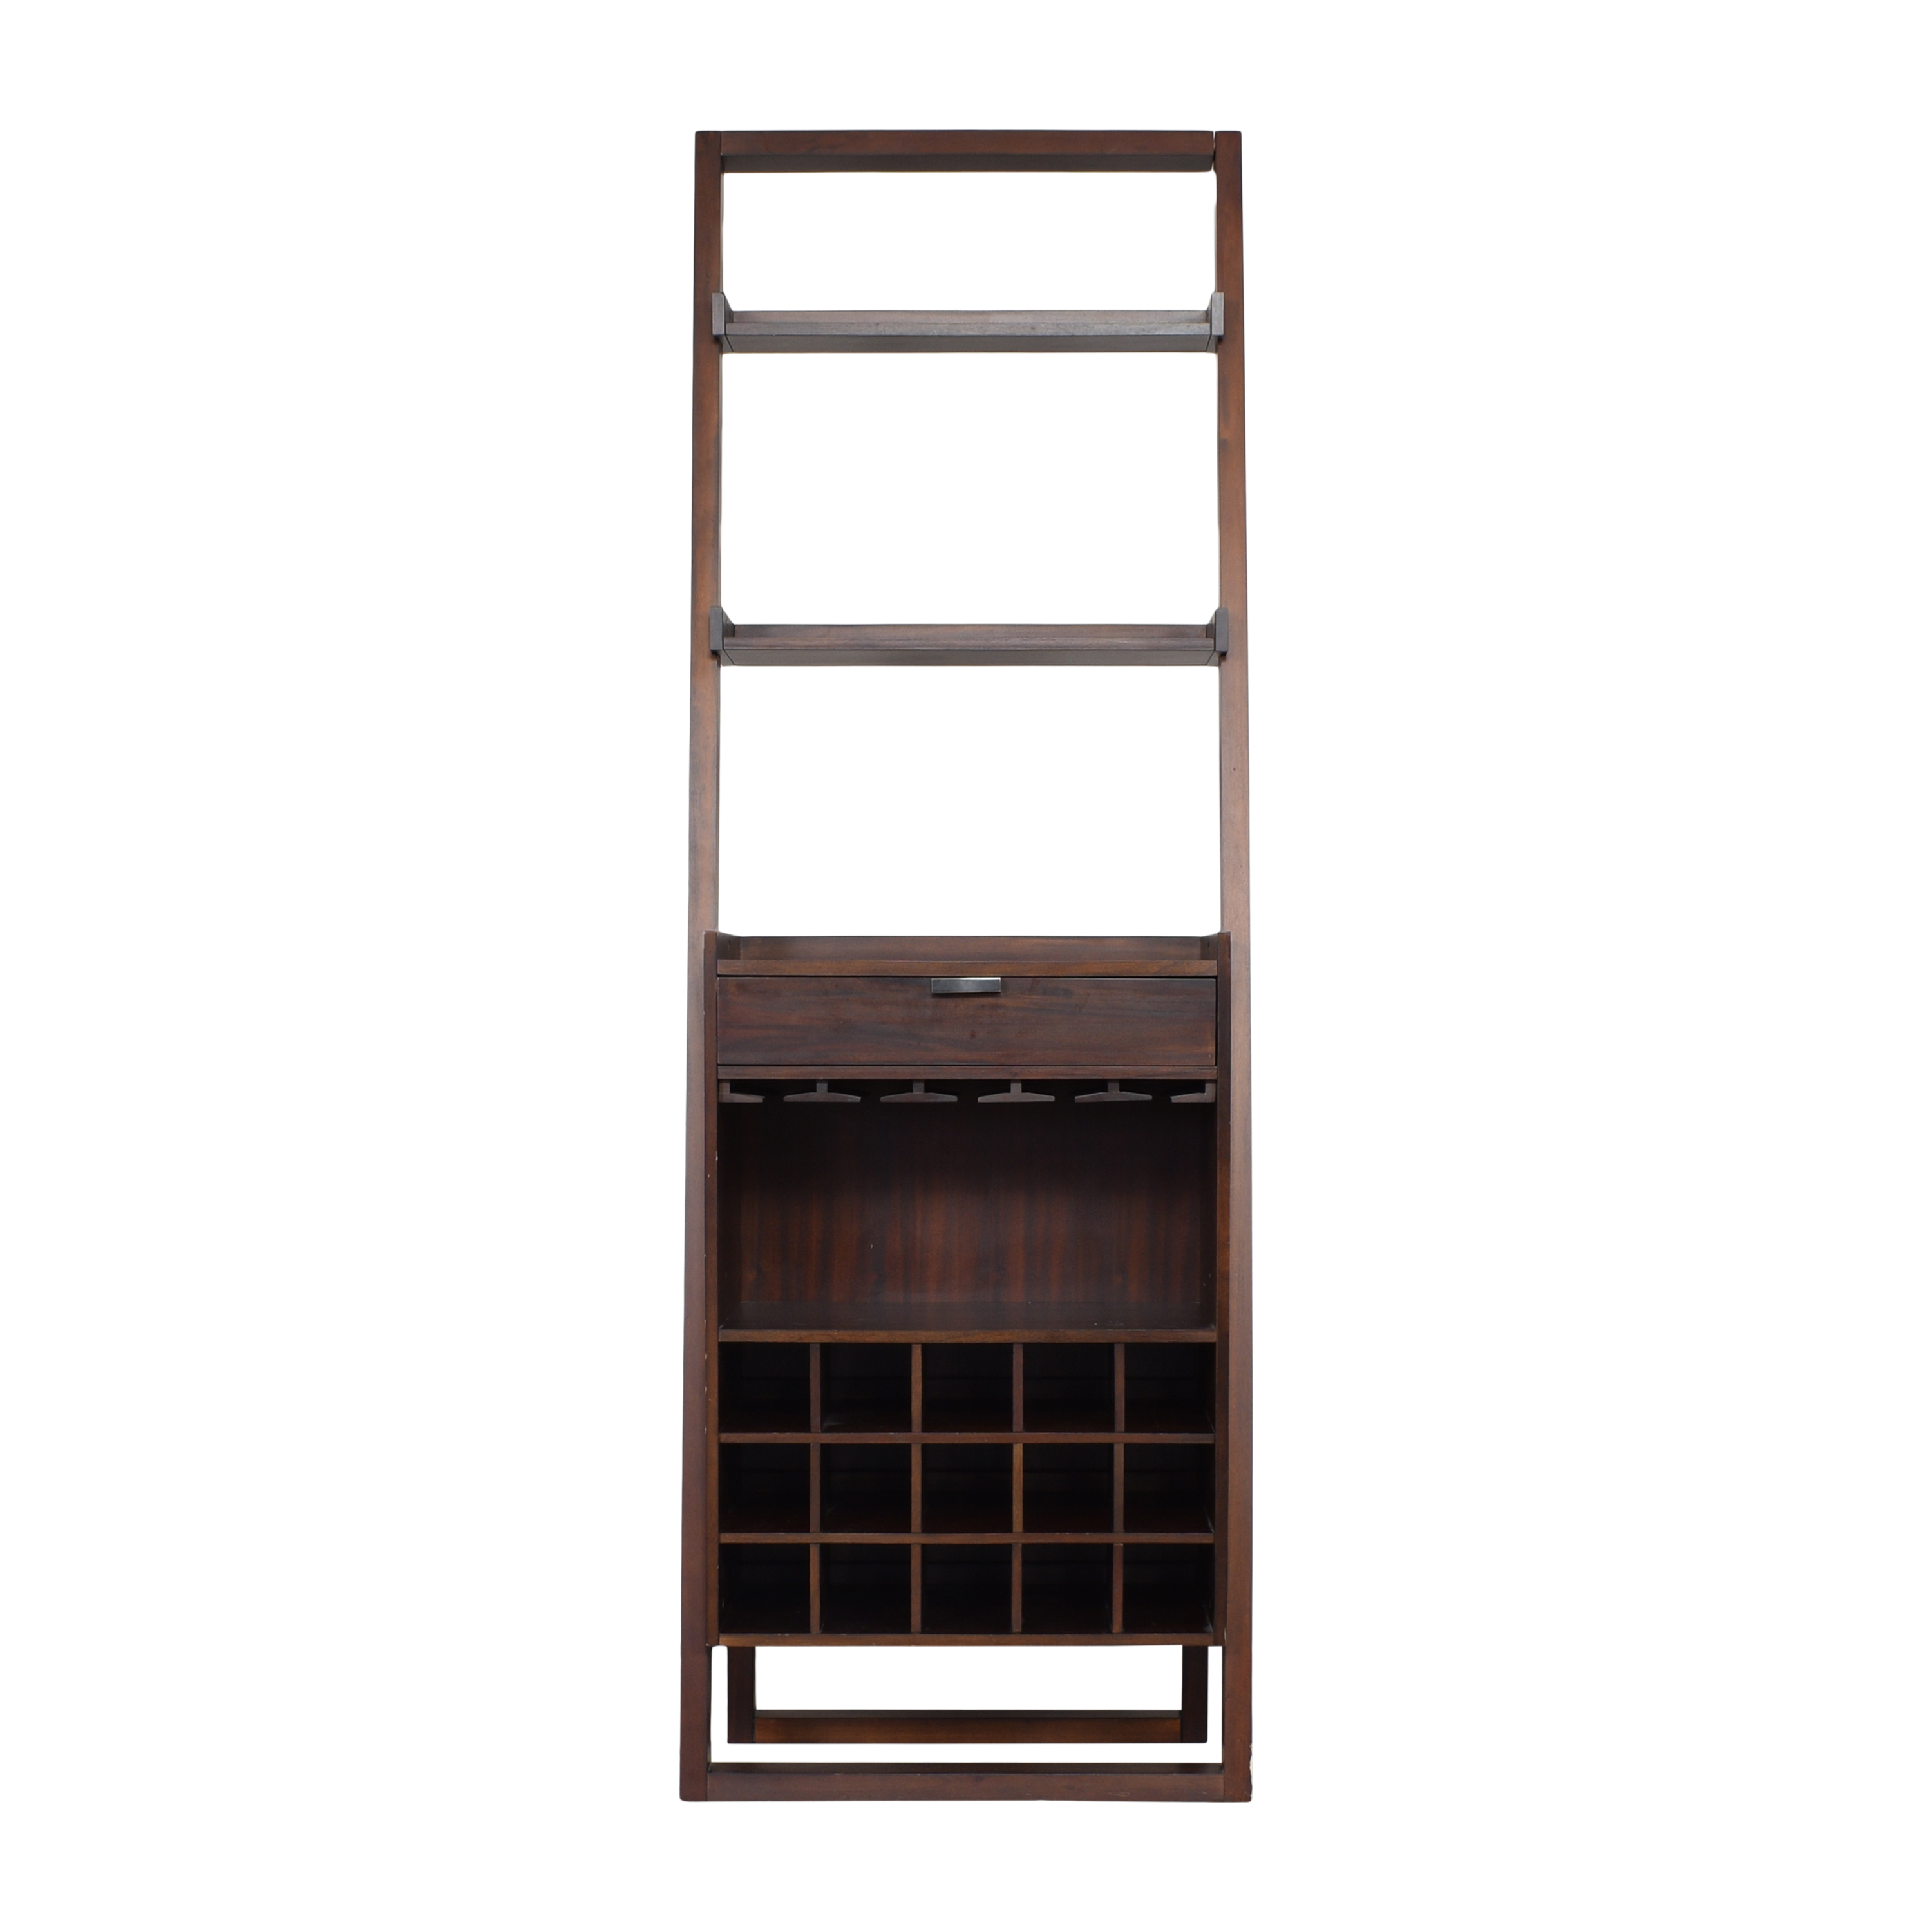 Crate & Barrel Crate and Barrel Sloane Leaning Wine Bar price